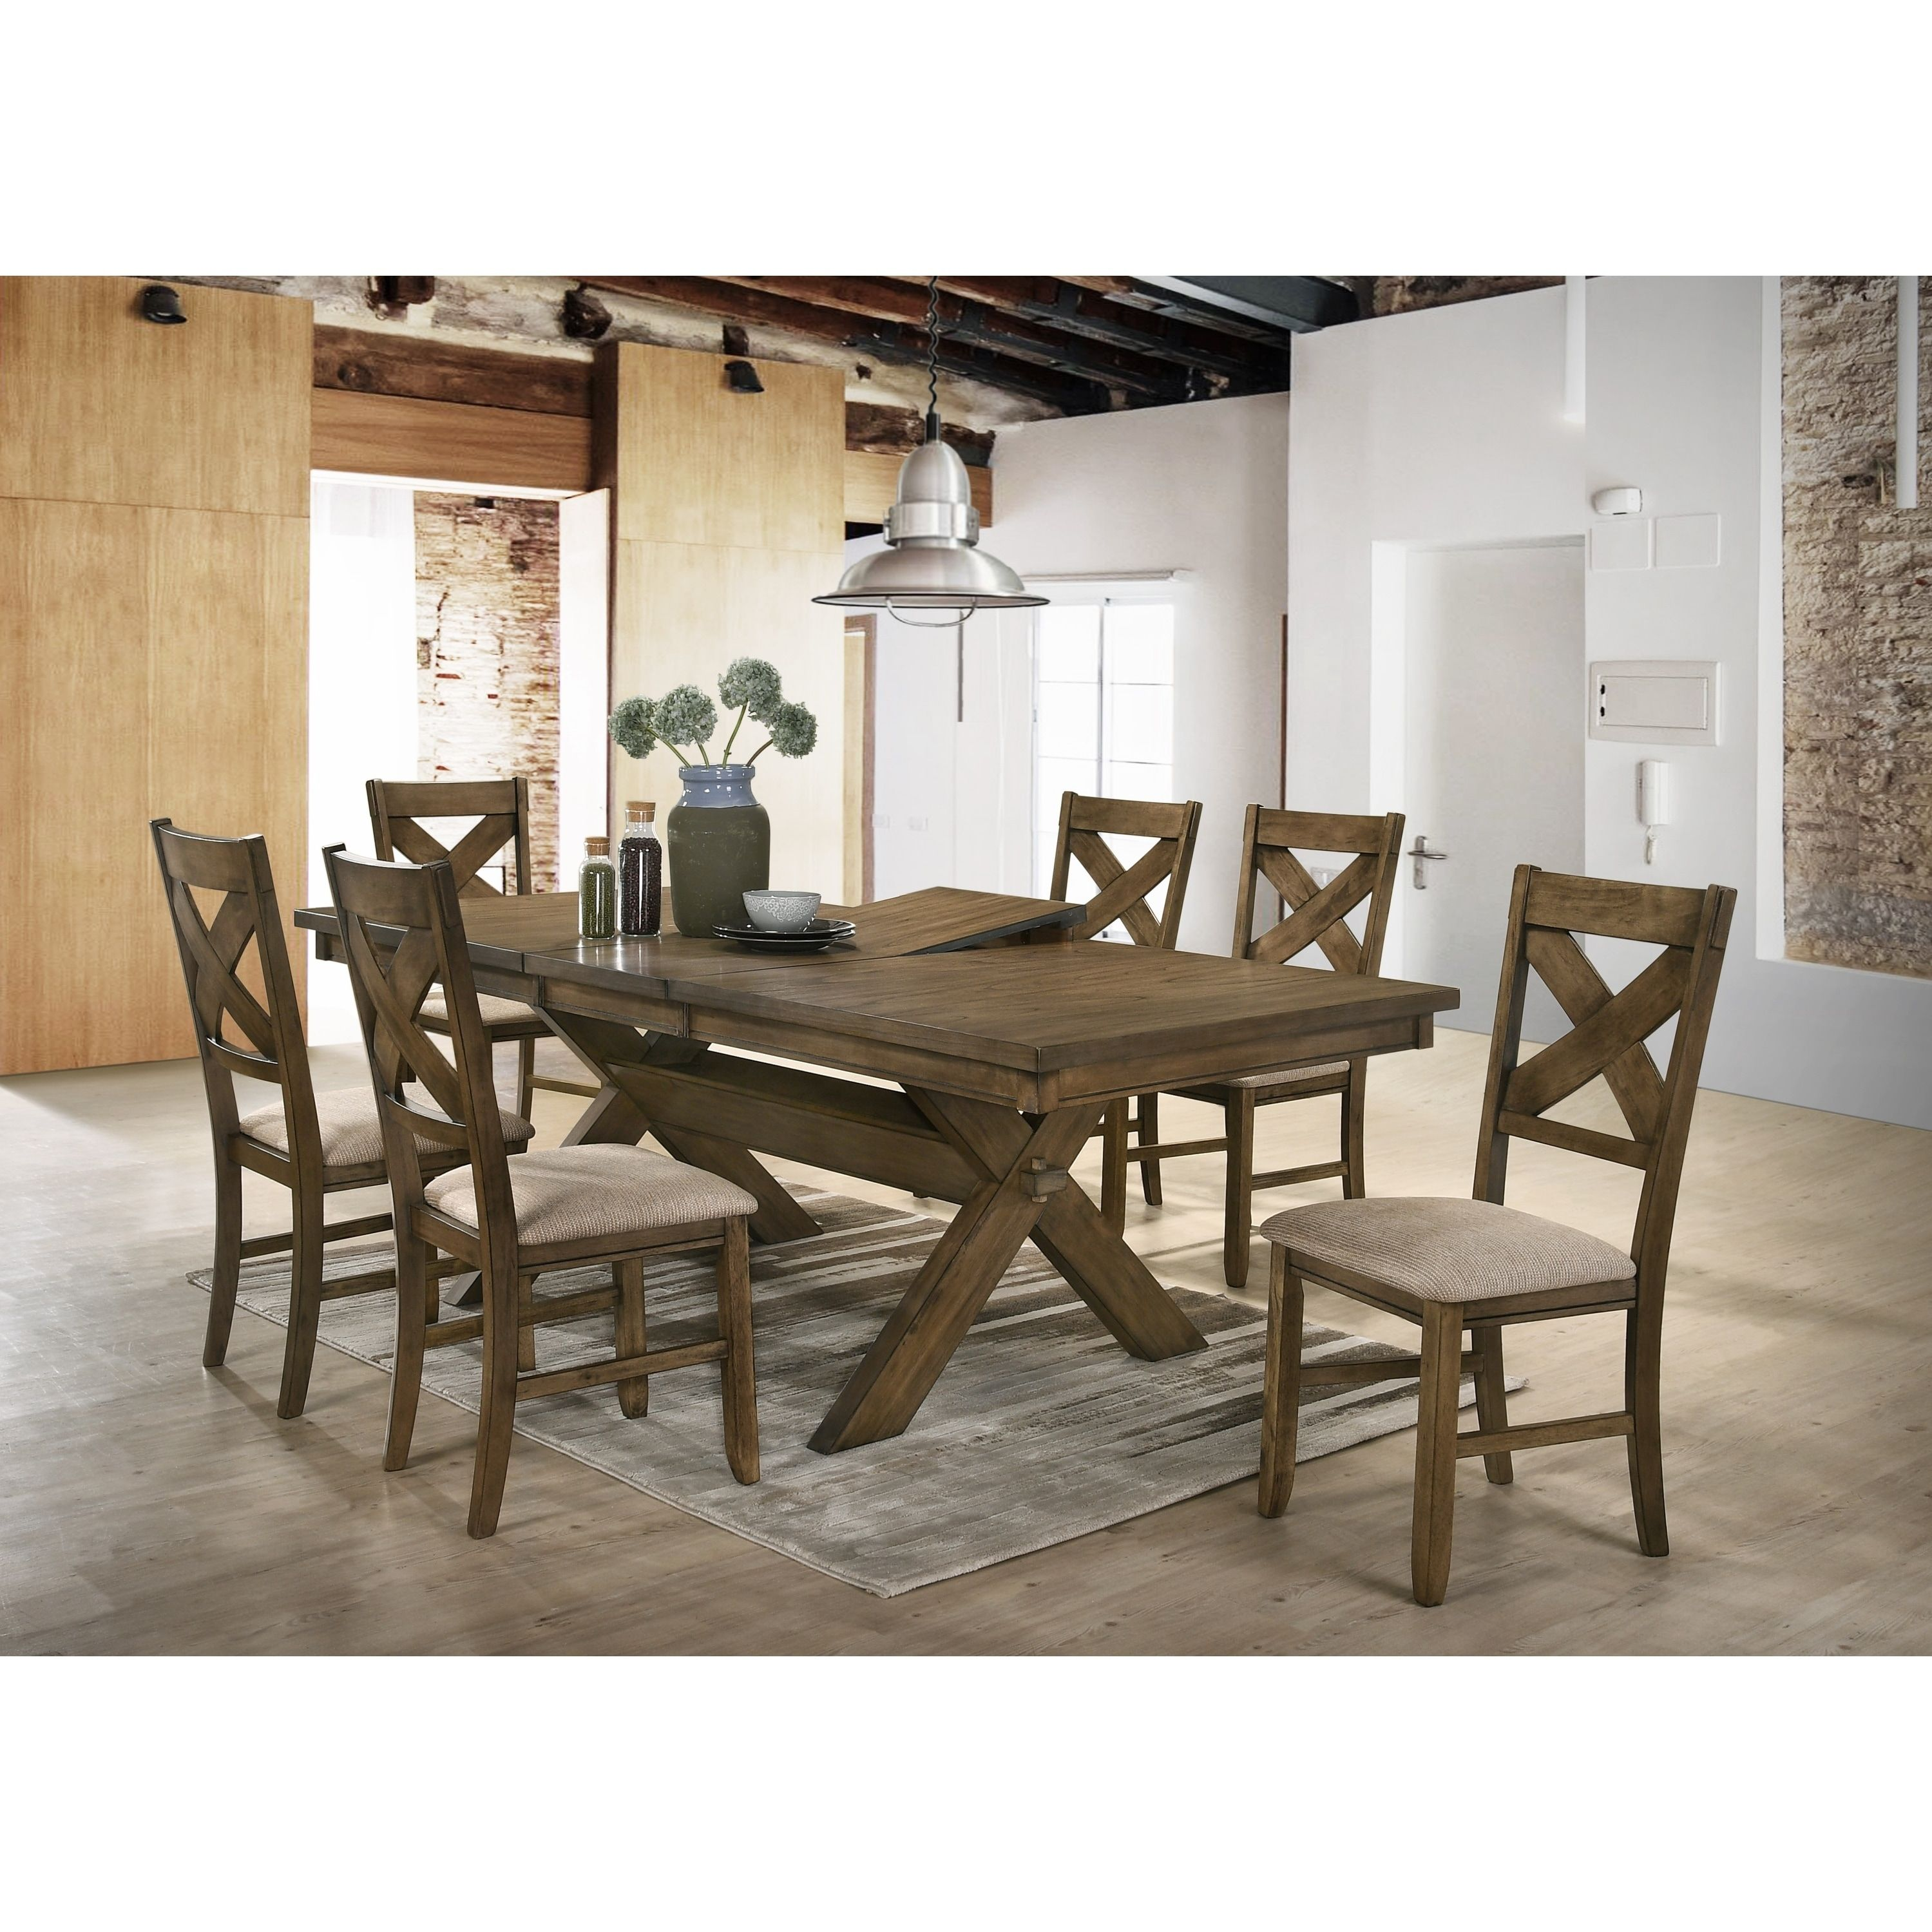 Raven Wood Dining Set Butterfly Leaf Table Six Chairs Brown